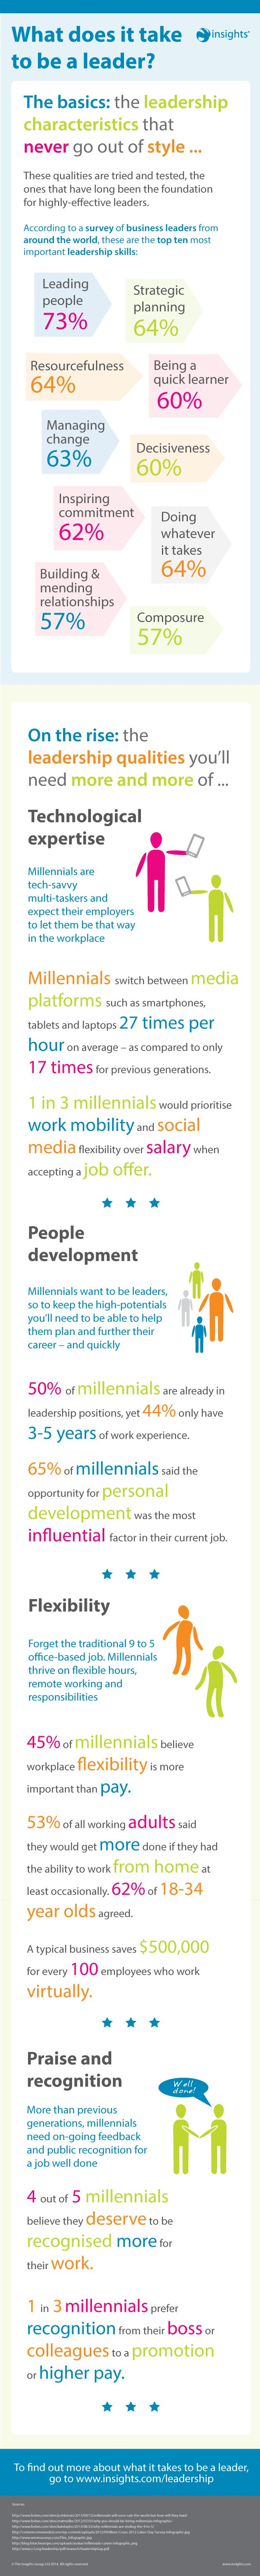 What does it take to be a leader? This infographic looks at the top 10 most important leadership skills...